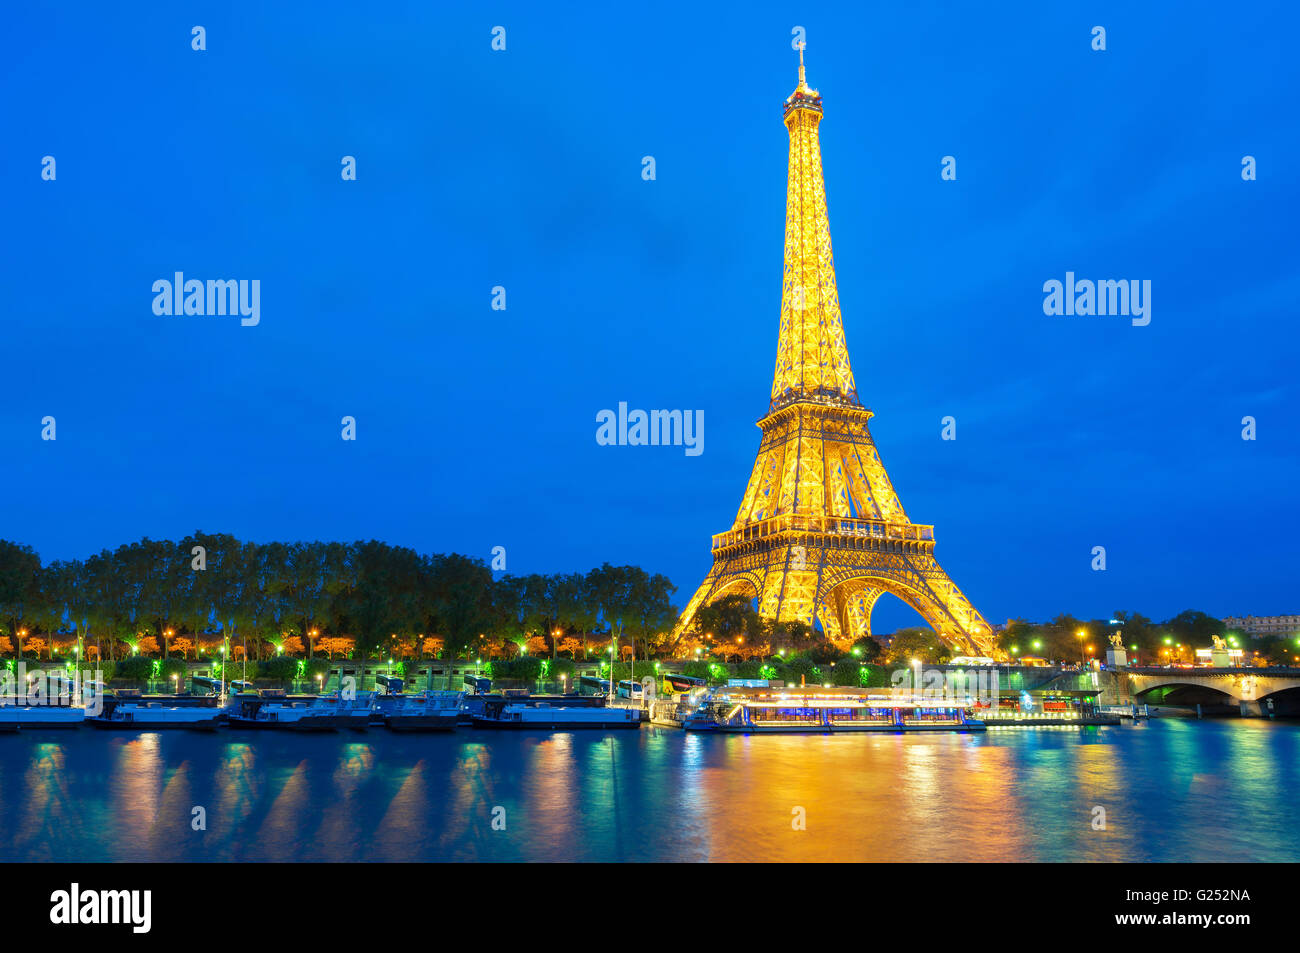 Beautiful view of illuminated Eiffel tower at dusk, Paris, France - Stock Image